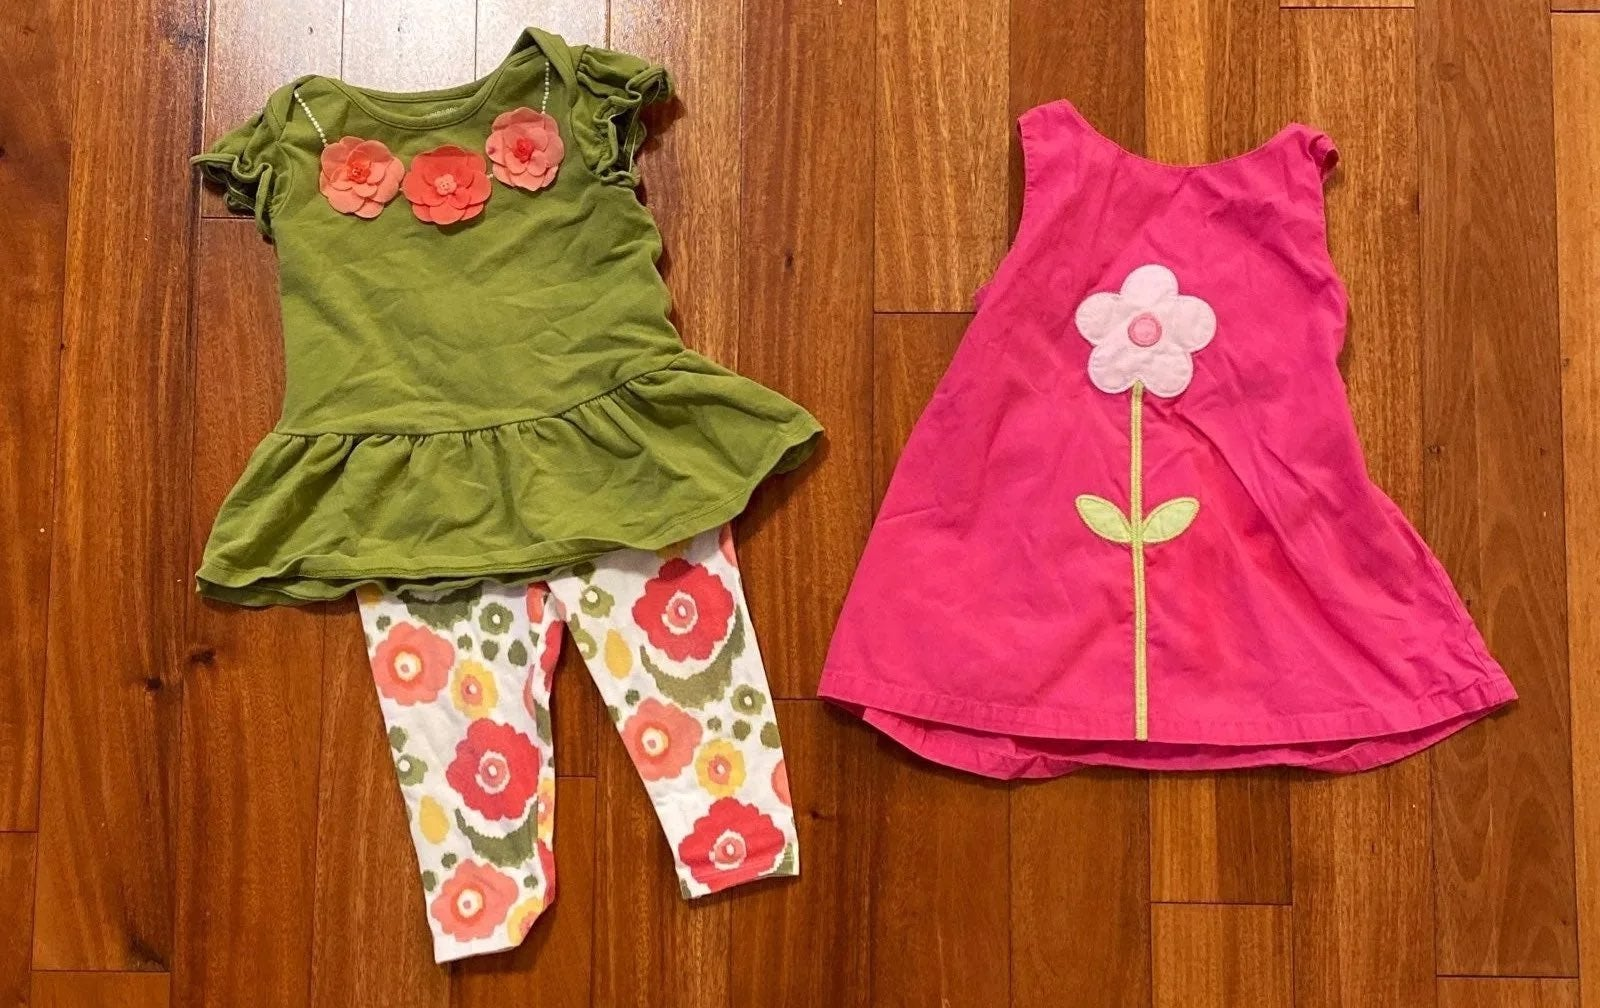 Gymboree girl outfits for size 6-12M